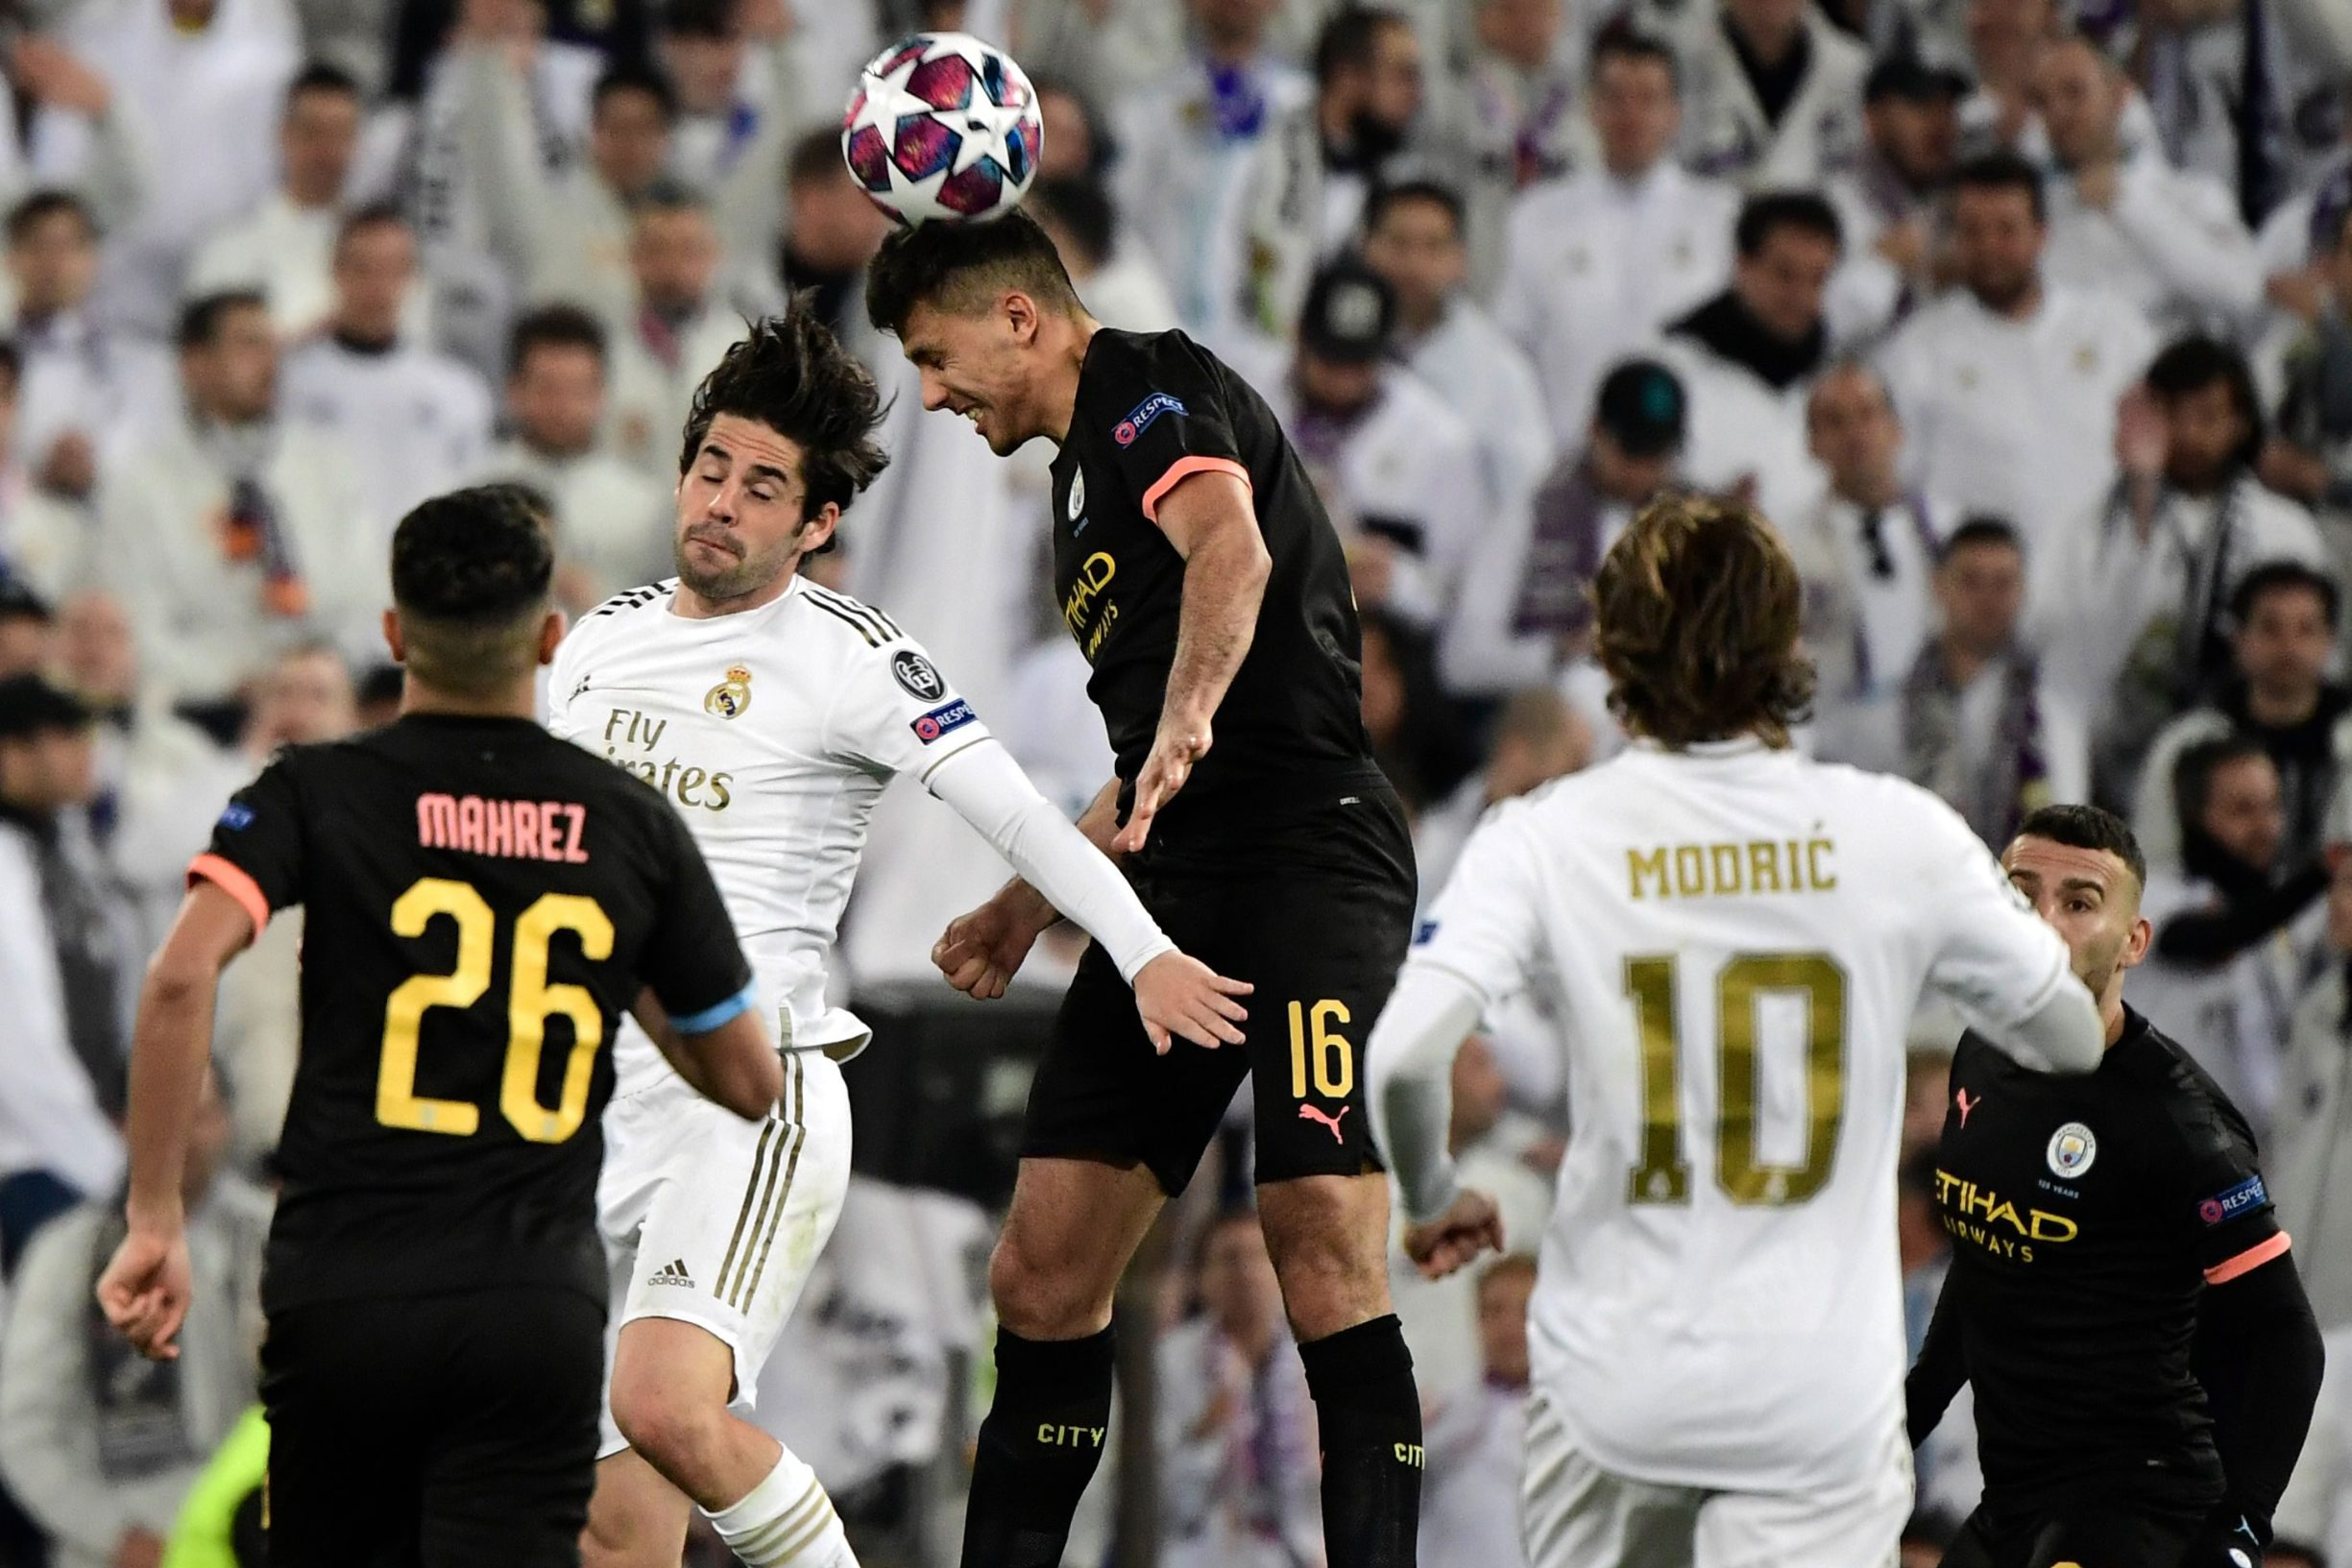 Real Madrid's Spanish midfielder Isco (2L) vies with Manchester City's Spanish midfielder Rodri during the UEFA Champions League round of 16 first-leg football match between Real Madrid CF and Manchester City at the Santiago Bernabeu stadium in Madrid on February 26, 2020. (Photo by JAVIER SORIANO / AFP)